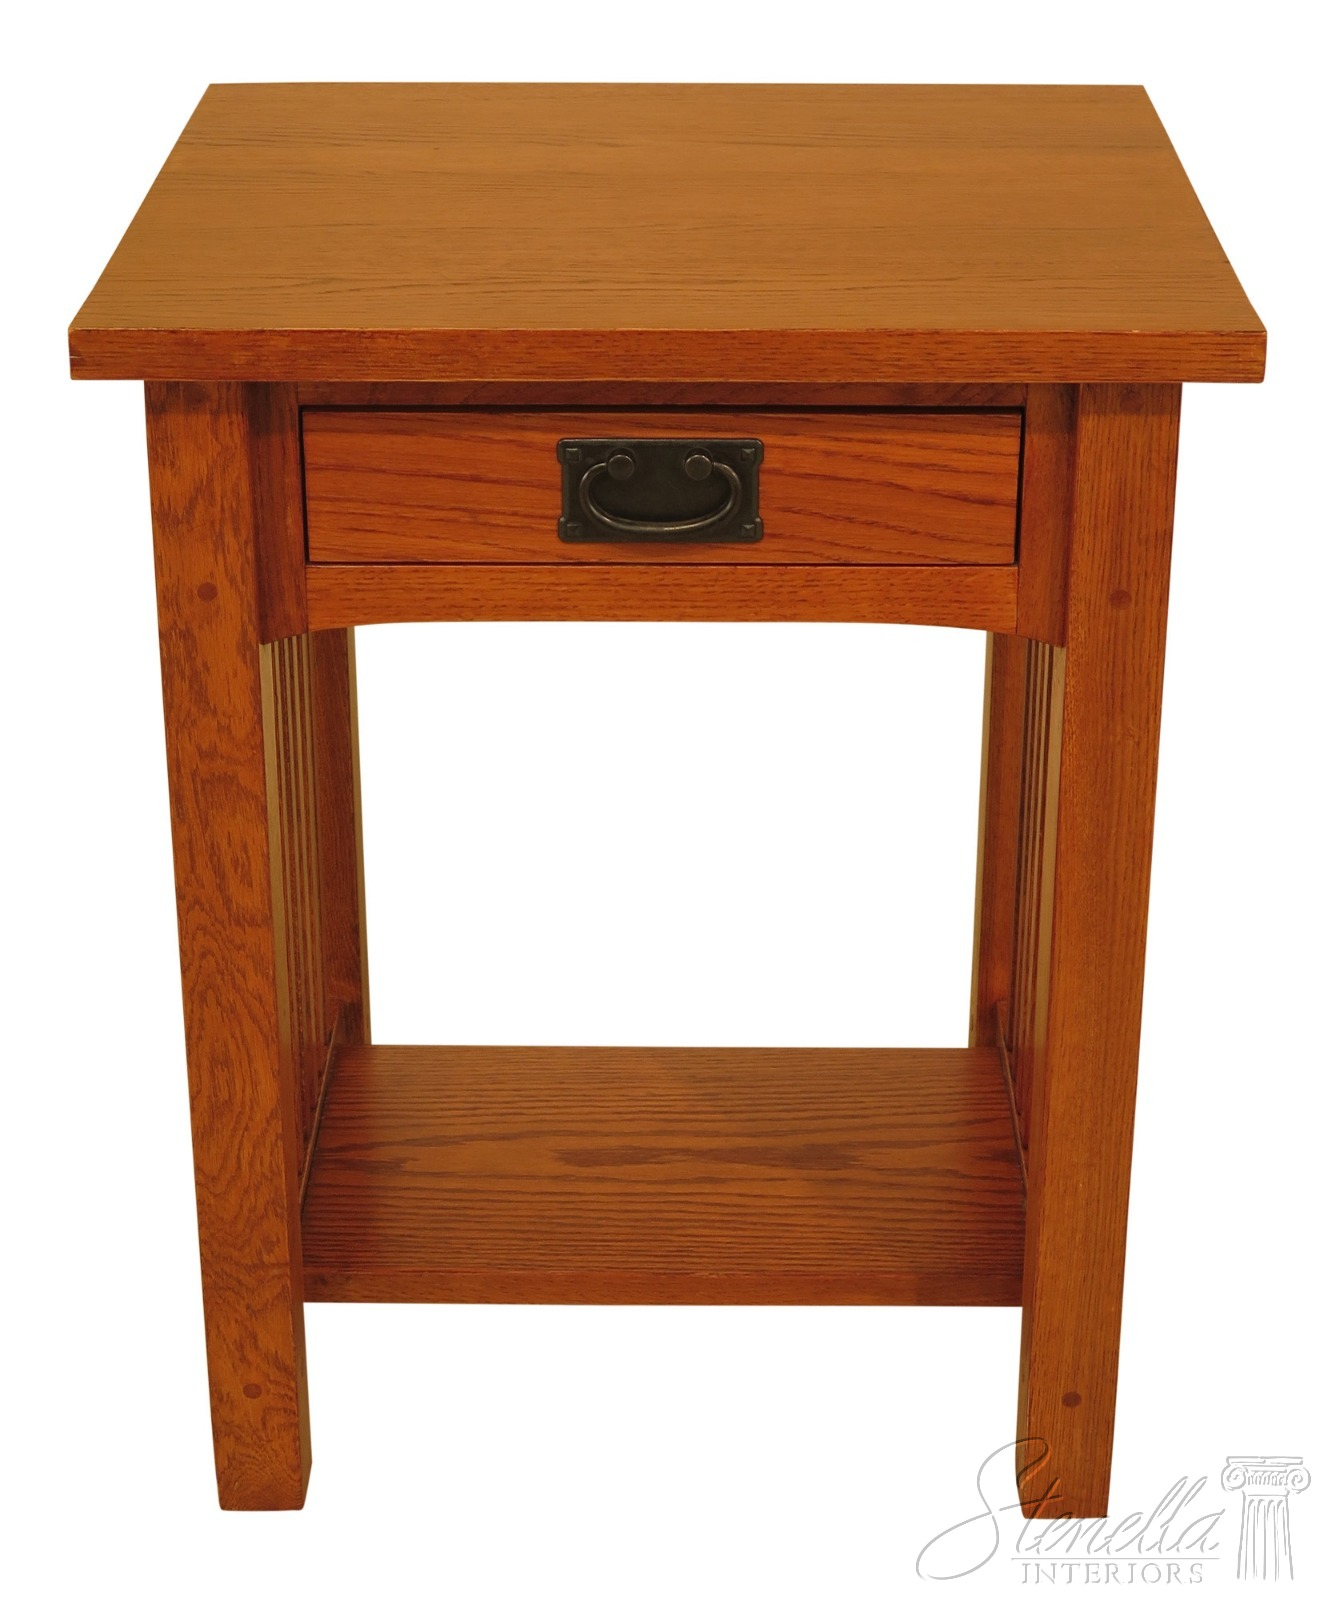 Details About 46306ec Mission Oak Style Arts Crafts 1 Drawer Nightstand